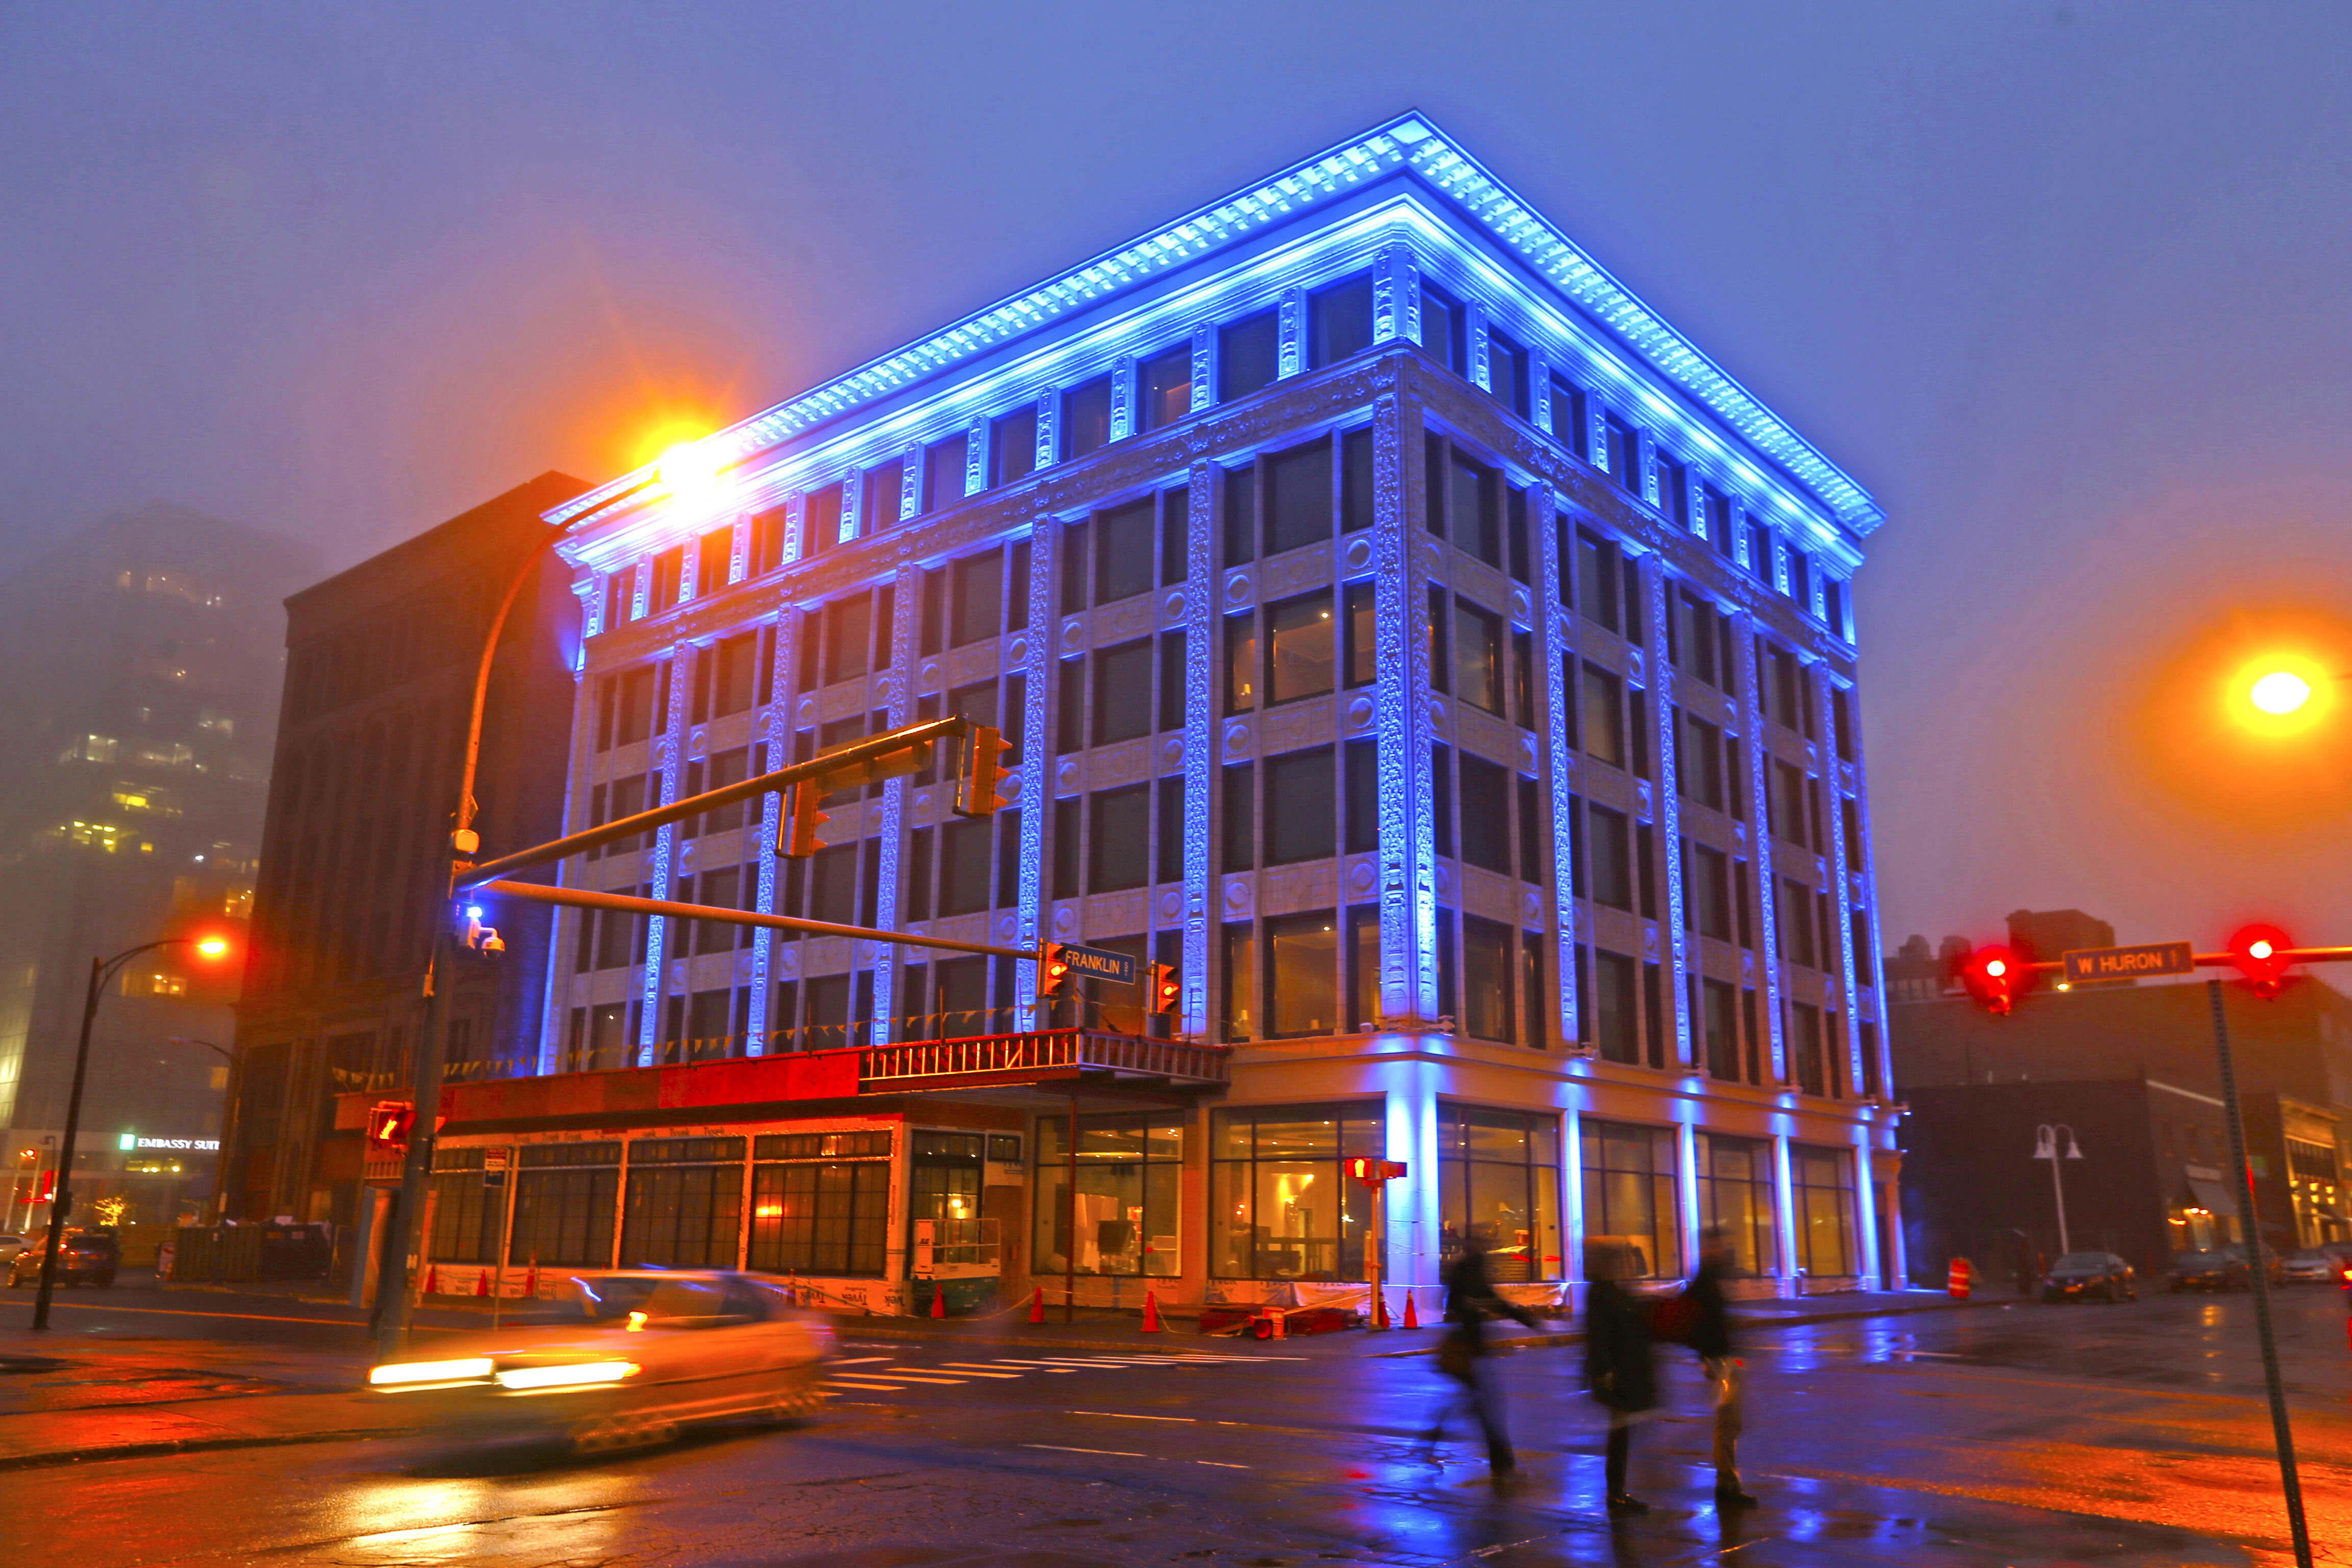 The Curtiss Hotel, shown during construction earlier this year, features colorful exterior lighting. (Robert Kirkham/News file photo)